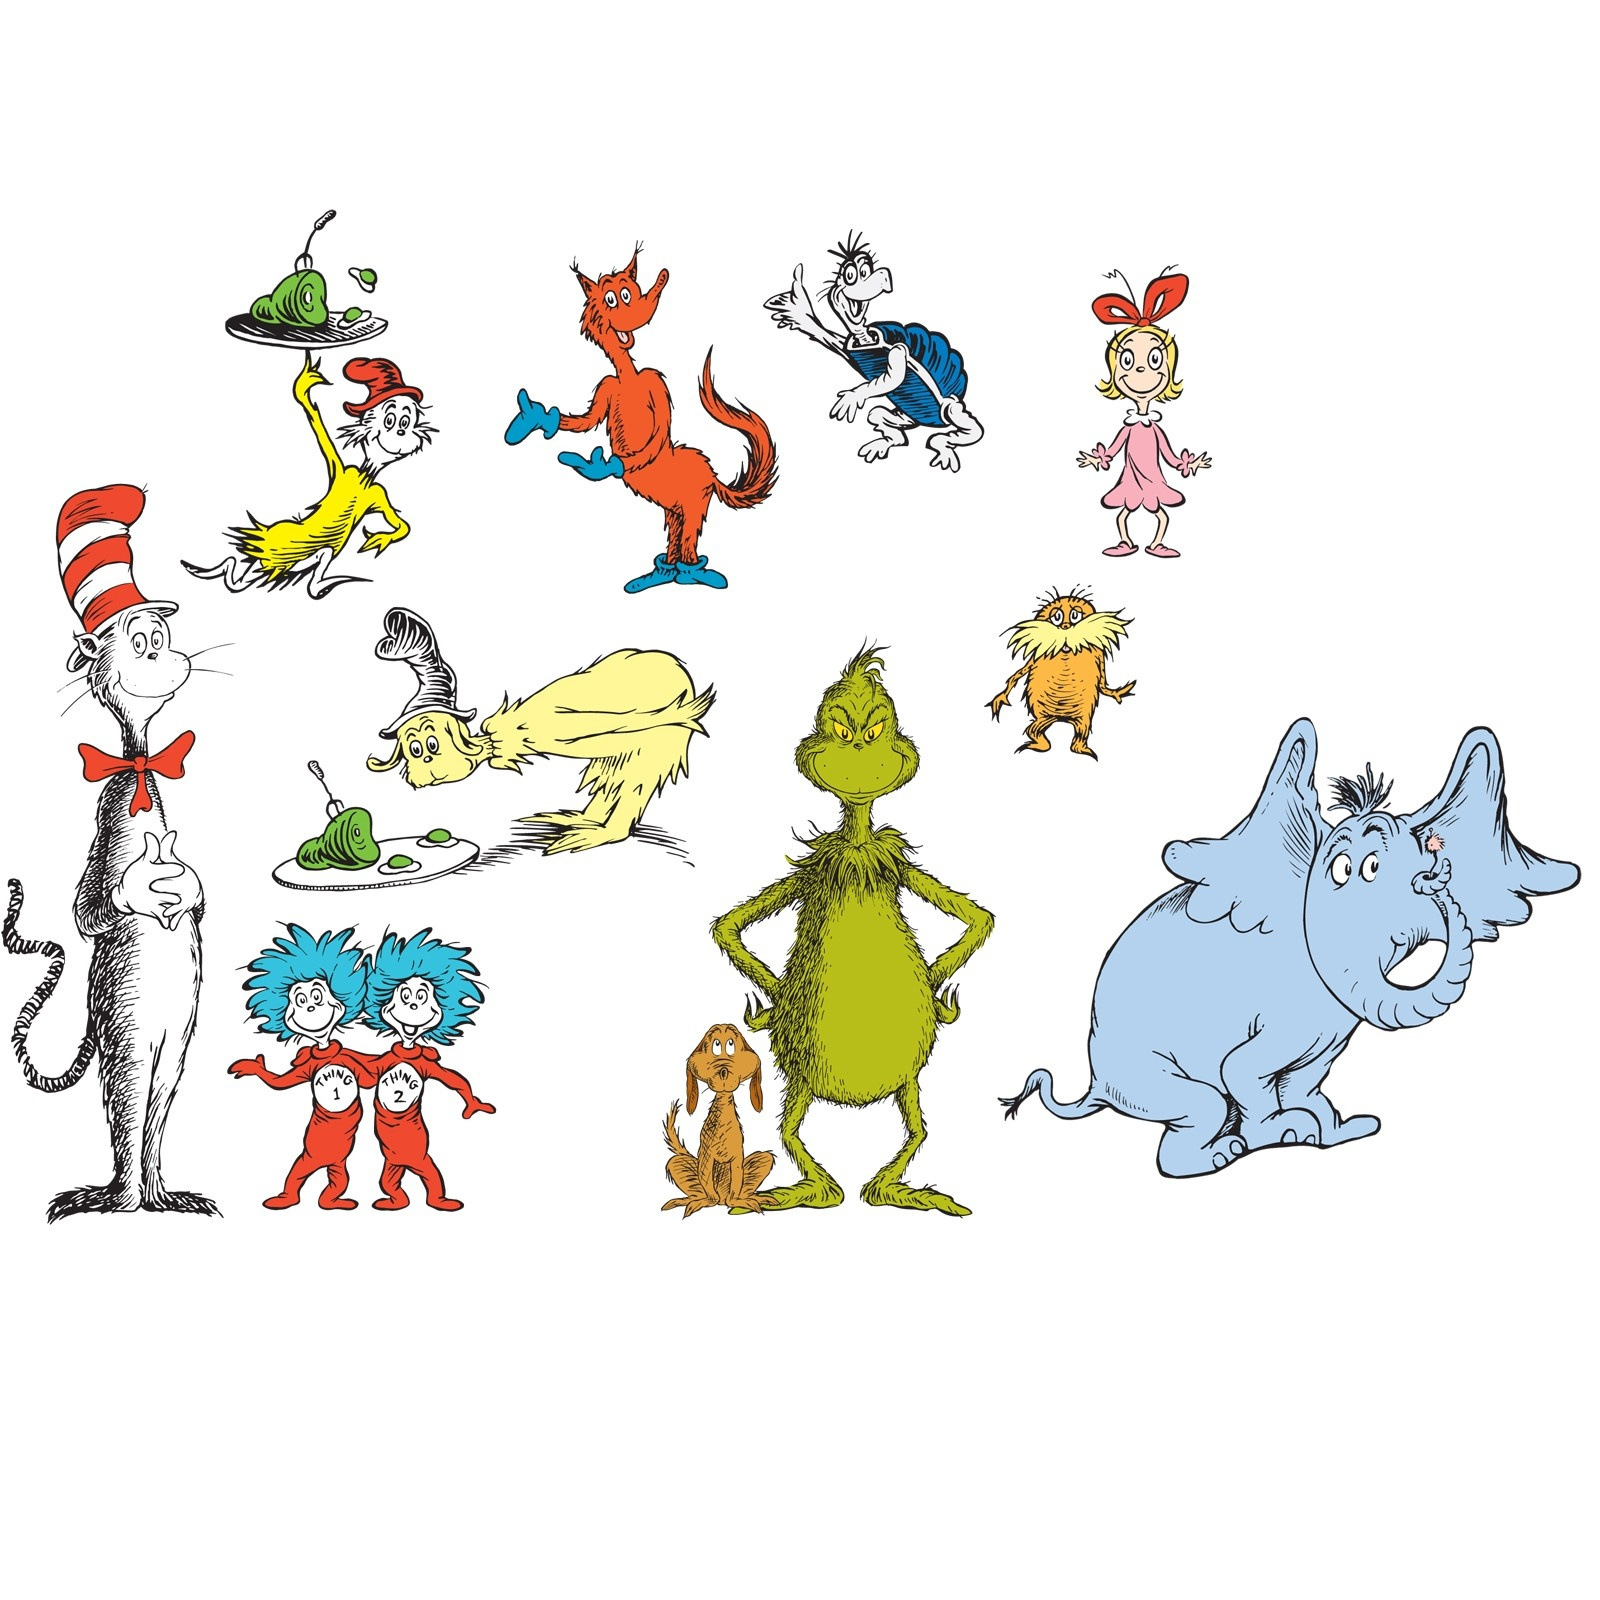 Free Dr. Seuss Characters, Download Free Clip Art, Free Clip Art On - Free Printable Pictures Of Dr Seuss Characters